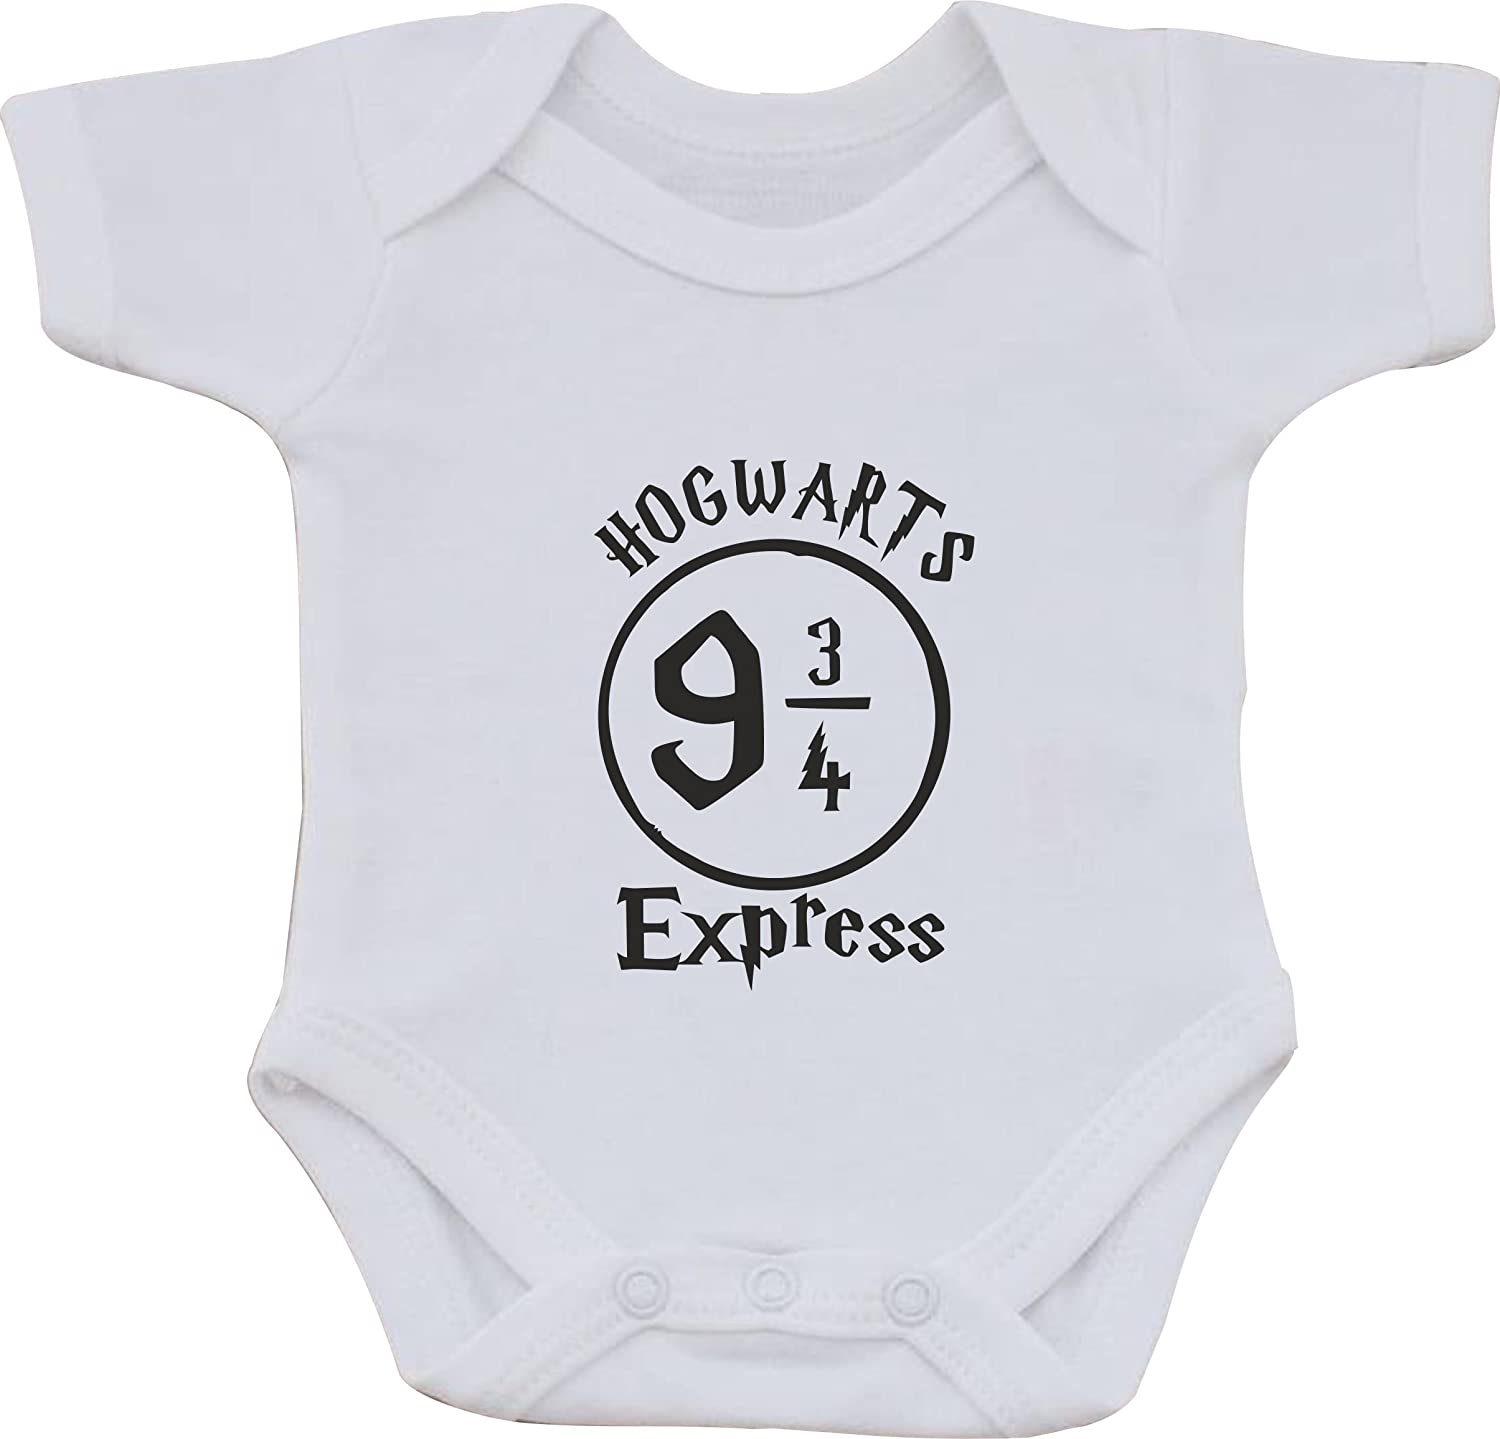 magic moments Hogwarts 9 3/4 Express Harry Potter Funny Humour Cotton White Baby Vest OR Bib